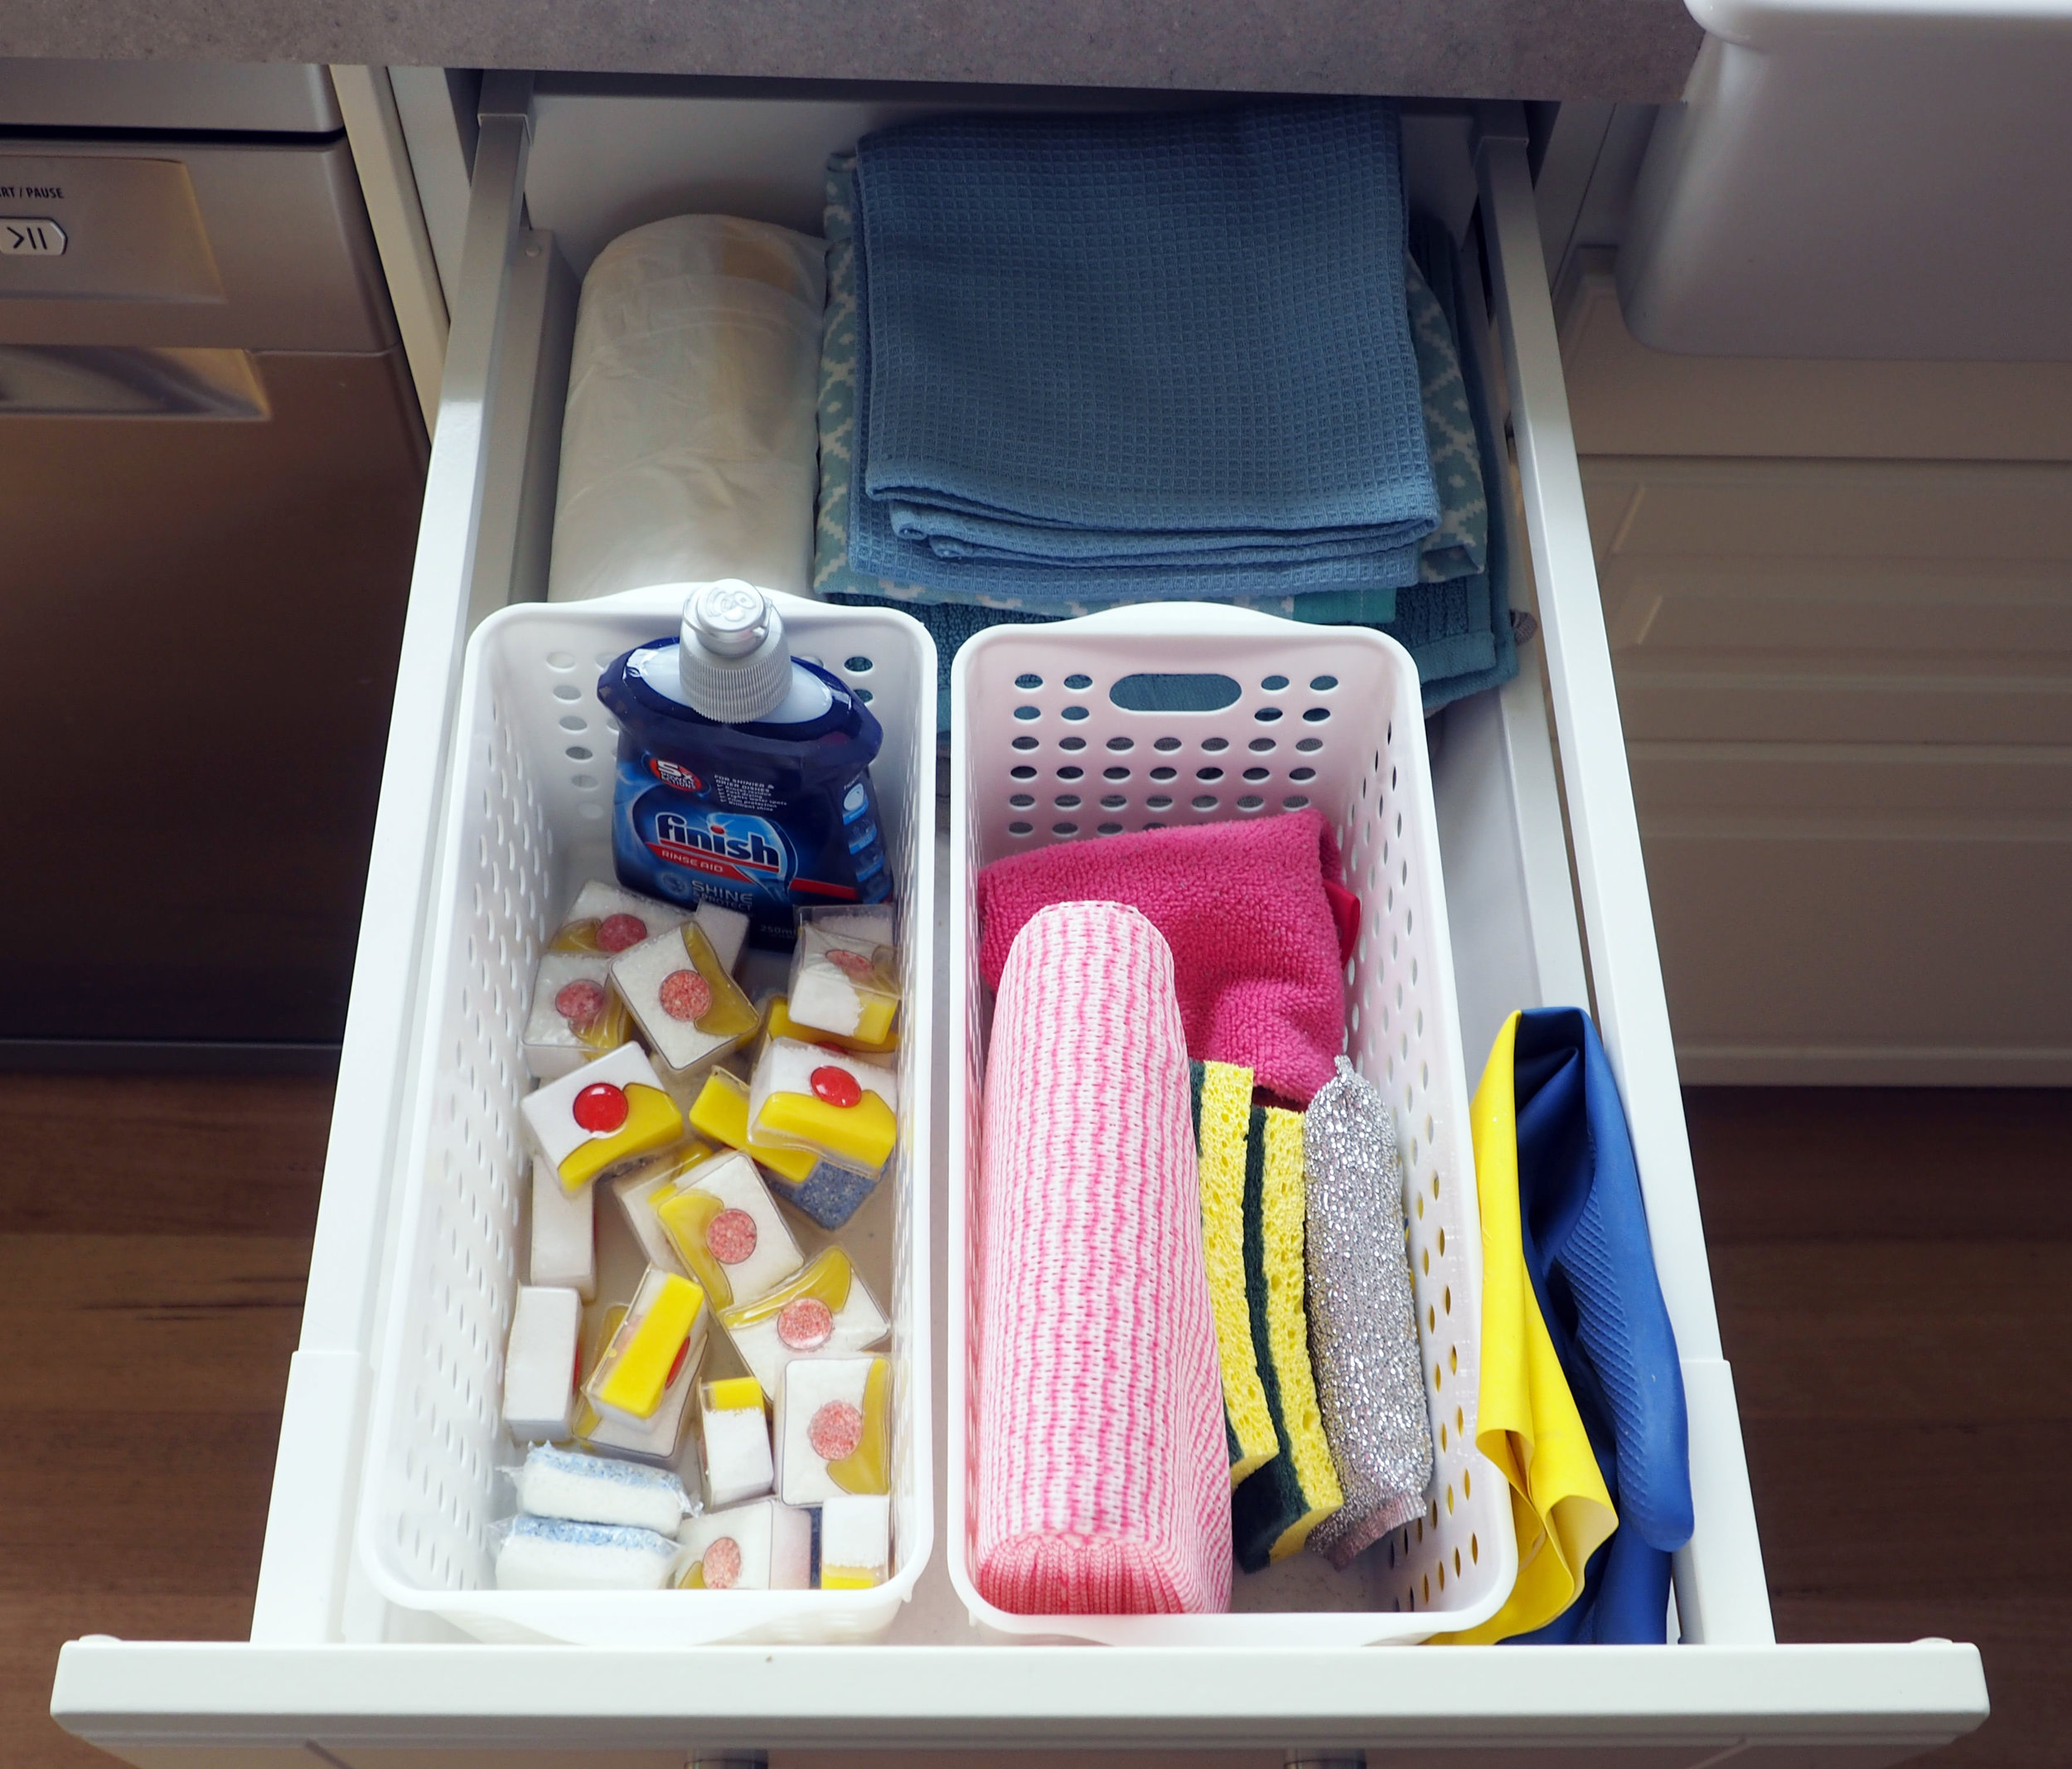 Have your cleaning products close at hand and easy to access in the cleaning zone {the Organised You}